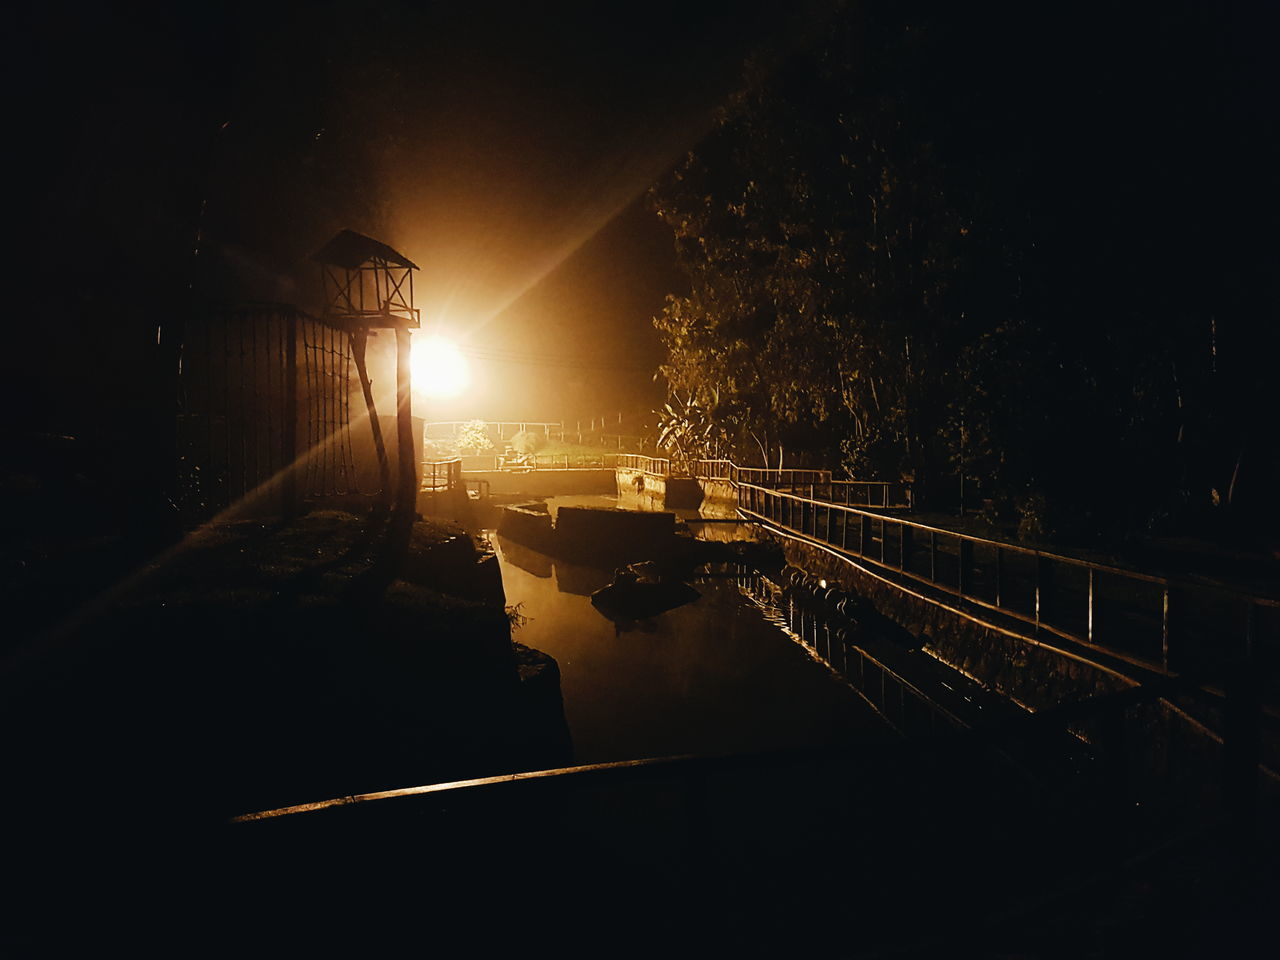 Nightphotography Light In The Darkness Outdoors Dark Illuminated Transportation Night Street Light Road City Outdoors Dark The Way Forward No People City Life